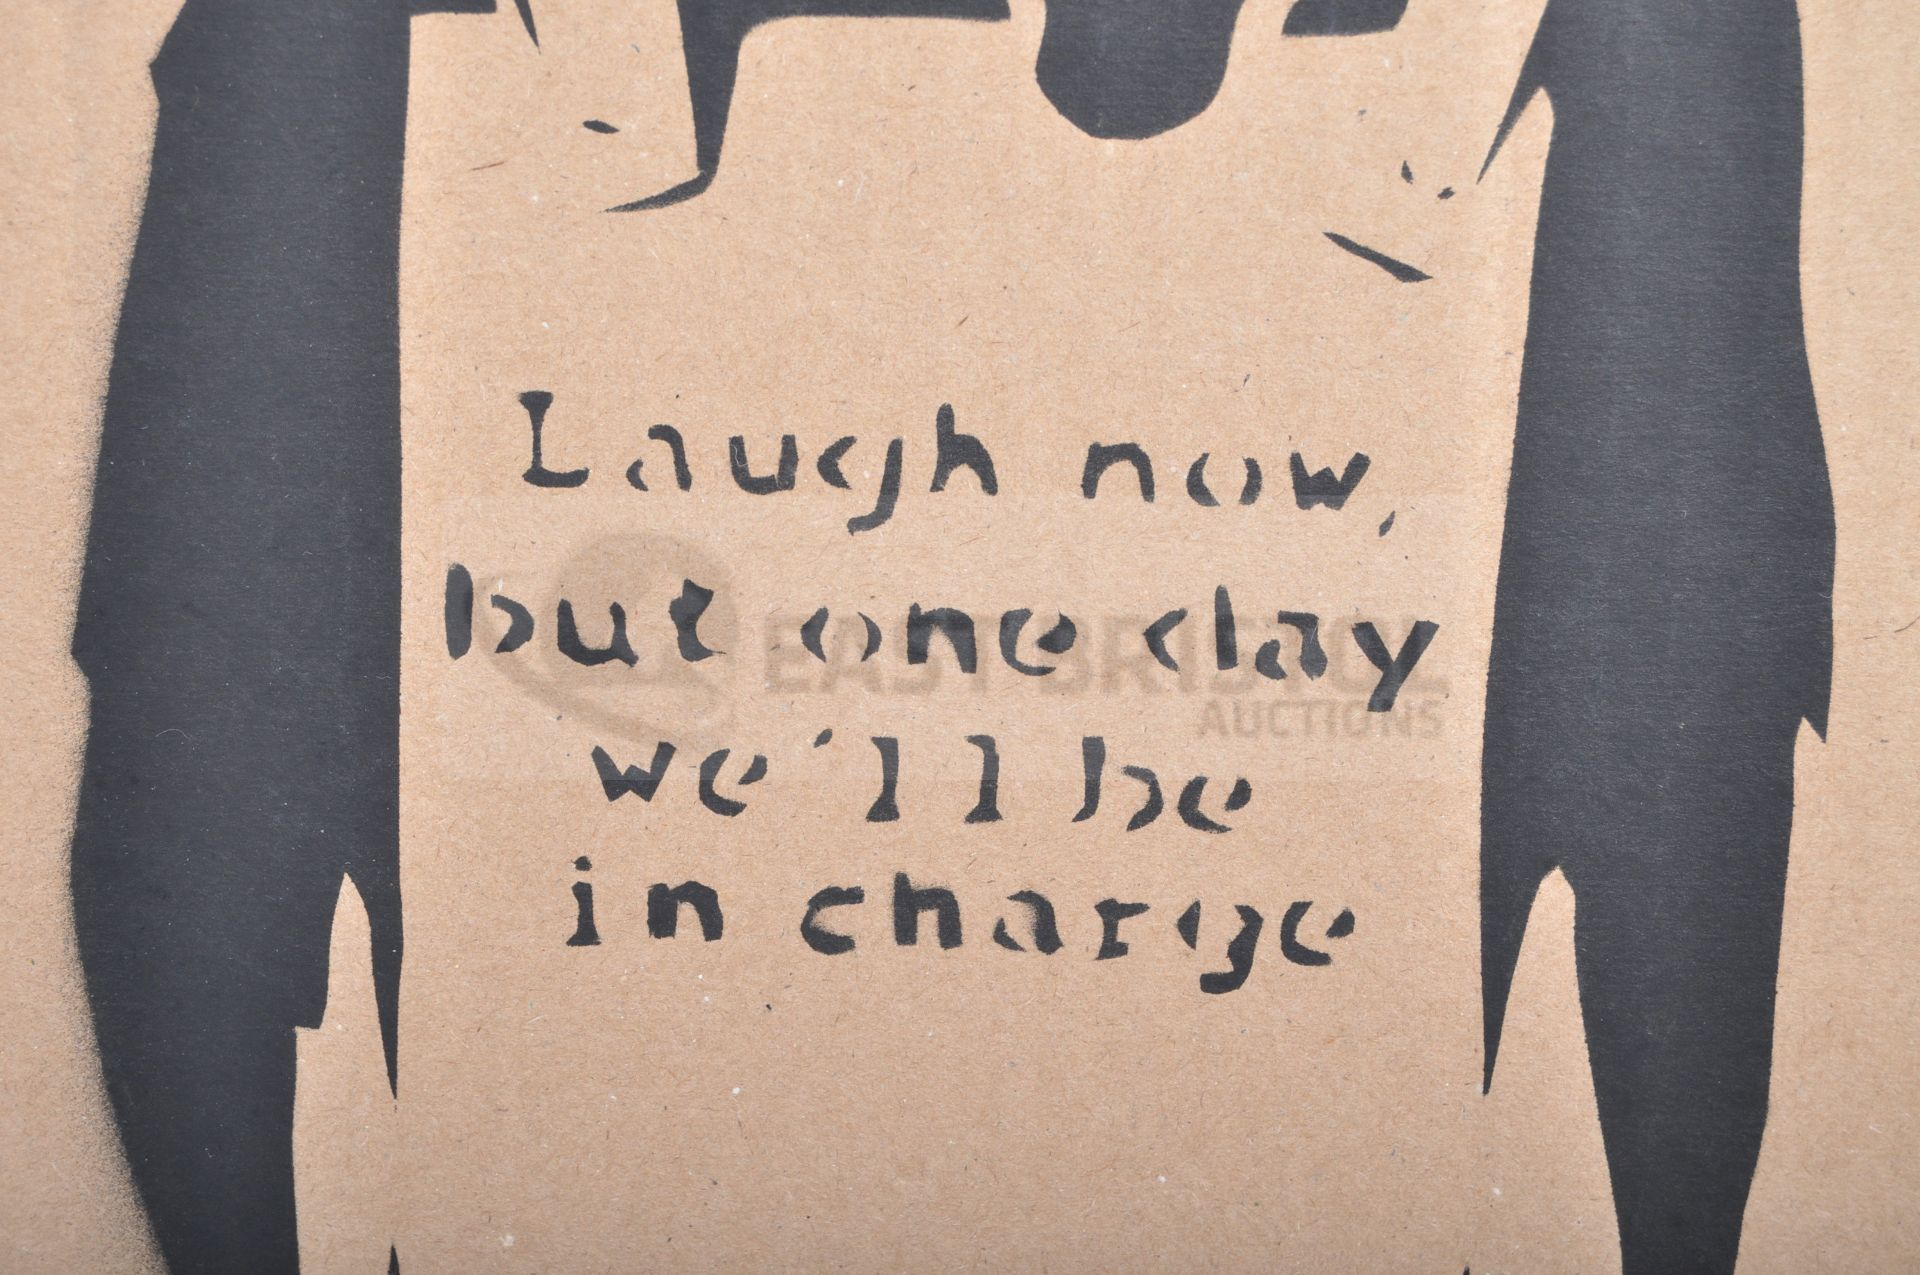 BANKSY - DISMALAND 2015 - LAUGH NOW - Image 3 of 3